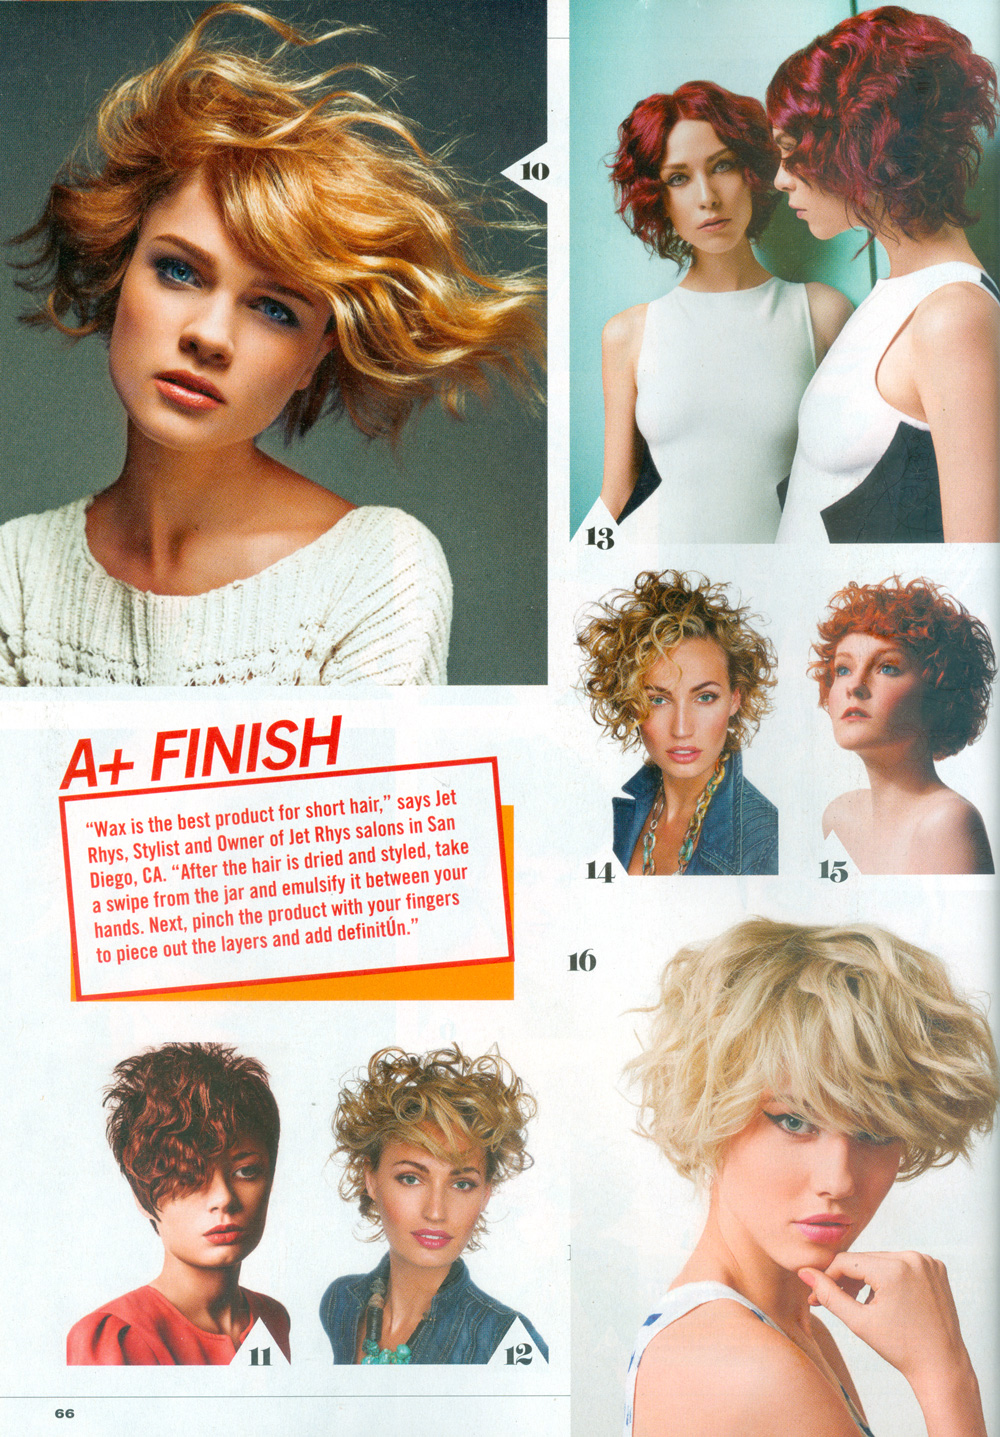 Celebrity Hairstyles Short Hair Style Guide Jet Rhys